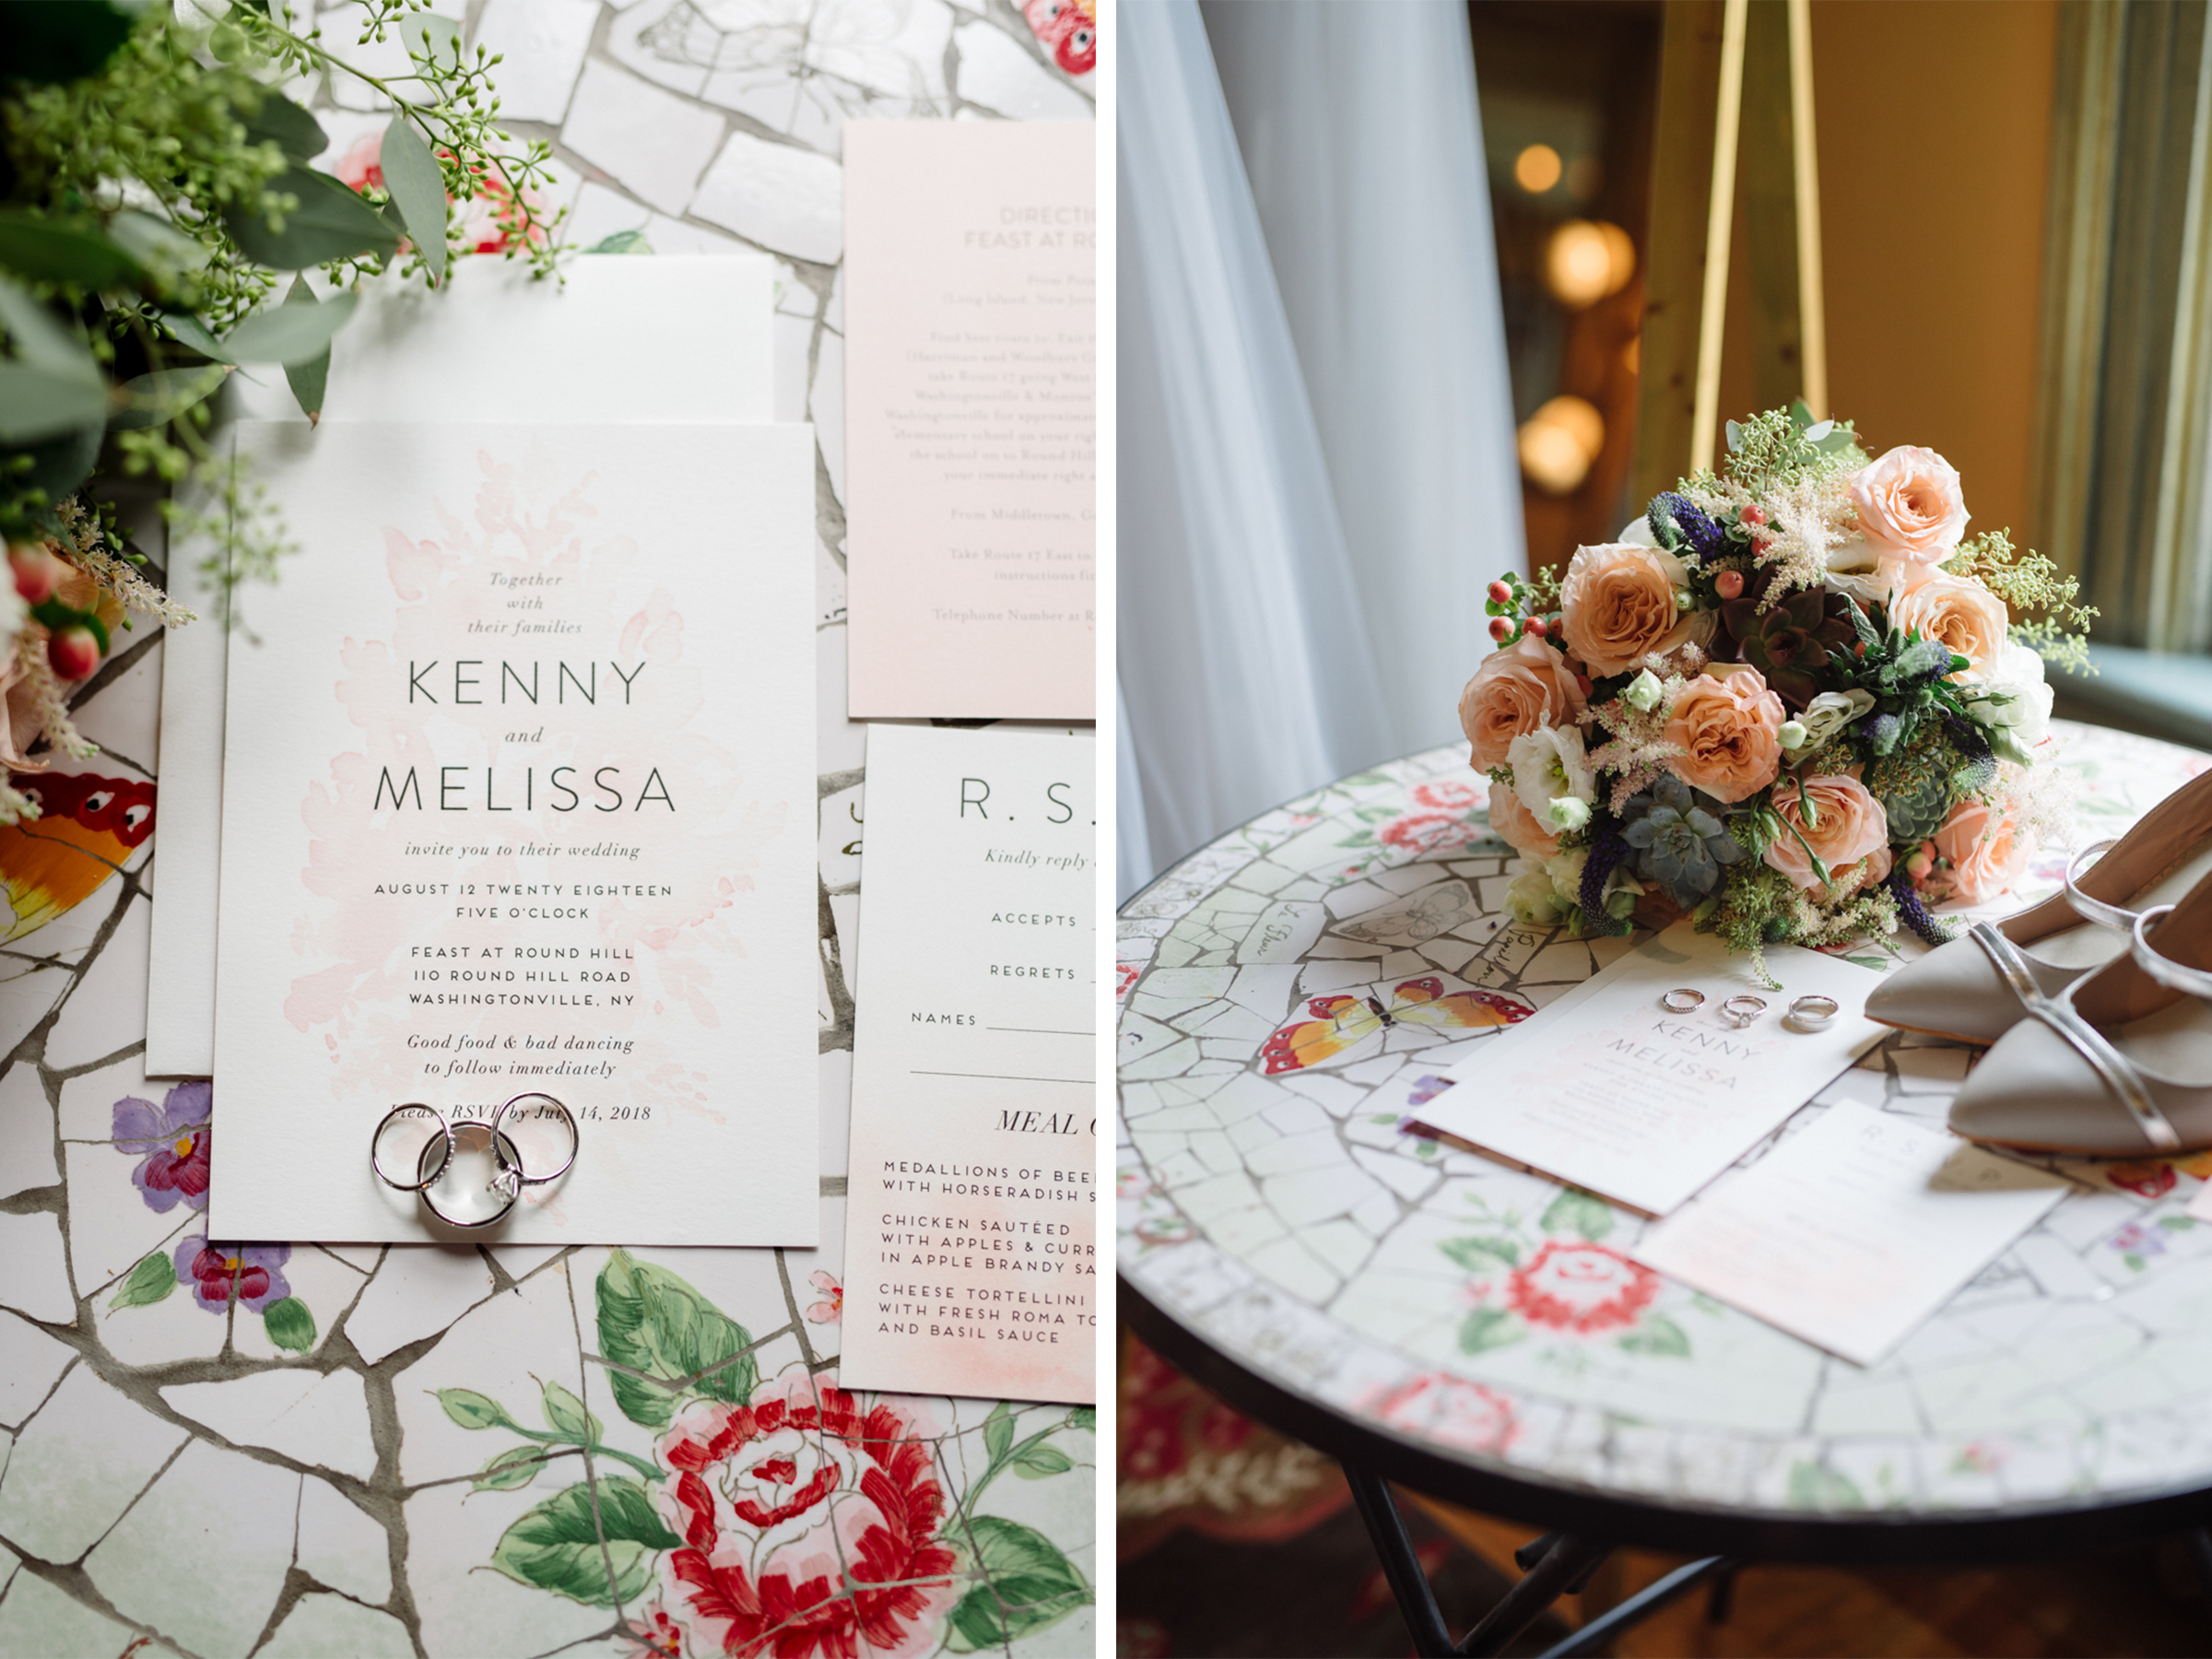 Feast at Round Hill Wedding-Kenny + Melissa- Wedding Bouquet and Wedding Invitations-Hudson Valley New York - Olivia Christina Photo-1.jpg